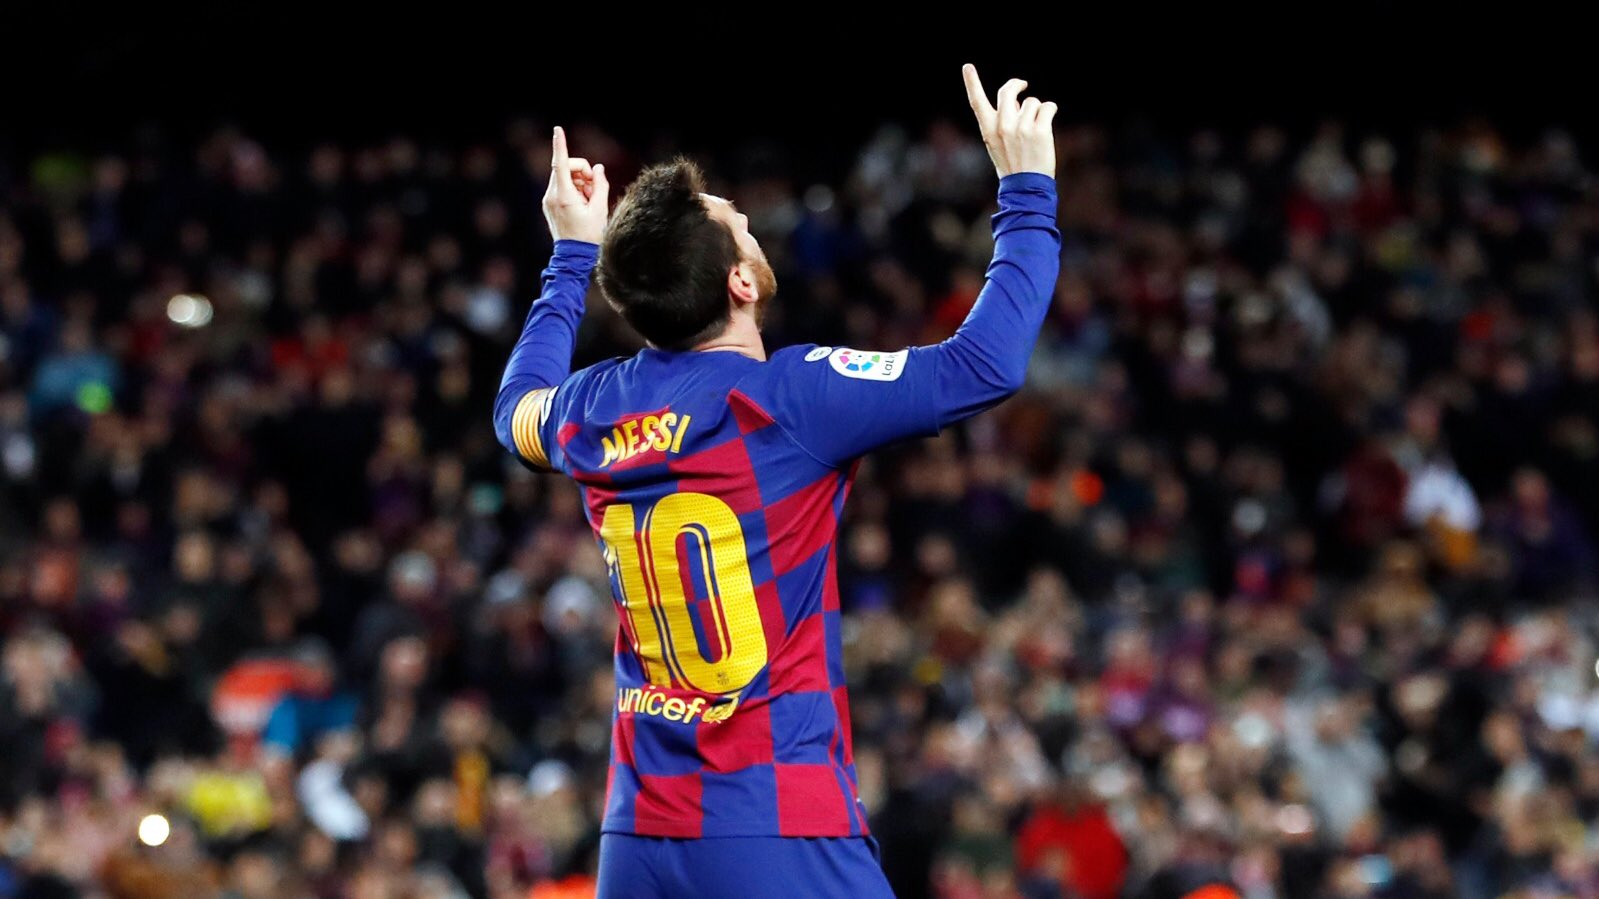 Leo Messi named LaLiga Player of the Month for February